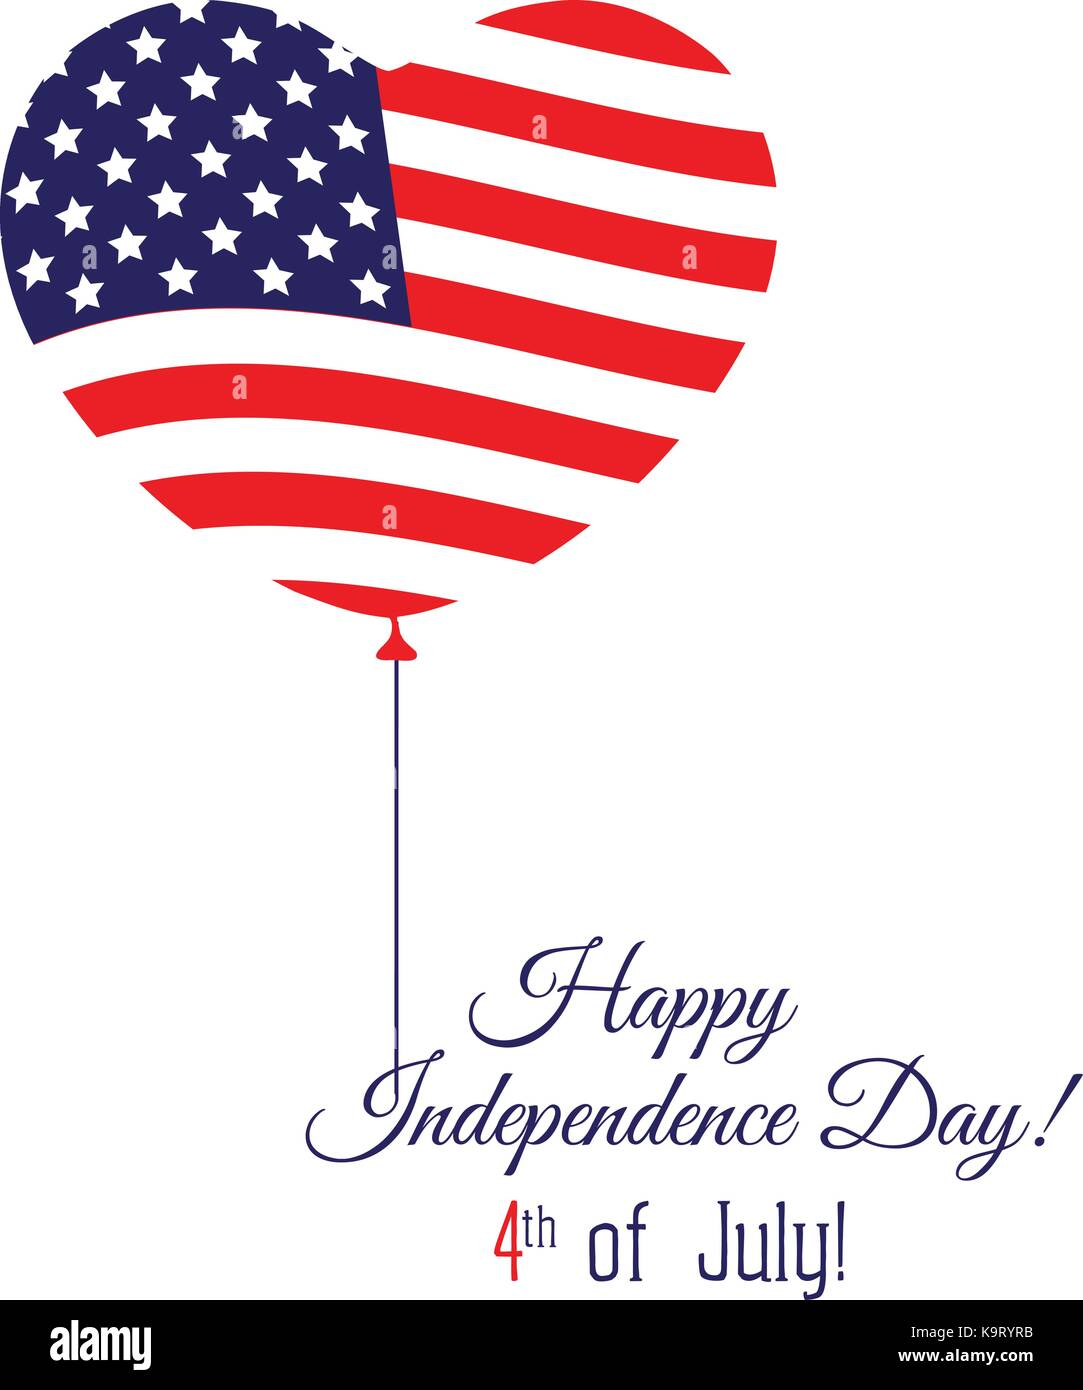 Independence day of the USA typographical background. Shining realistic balloons - Stock Image